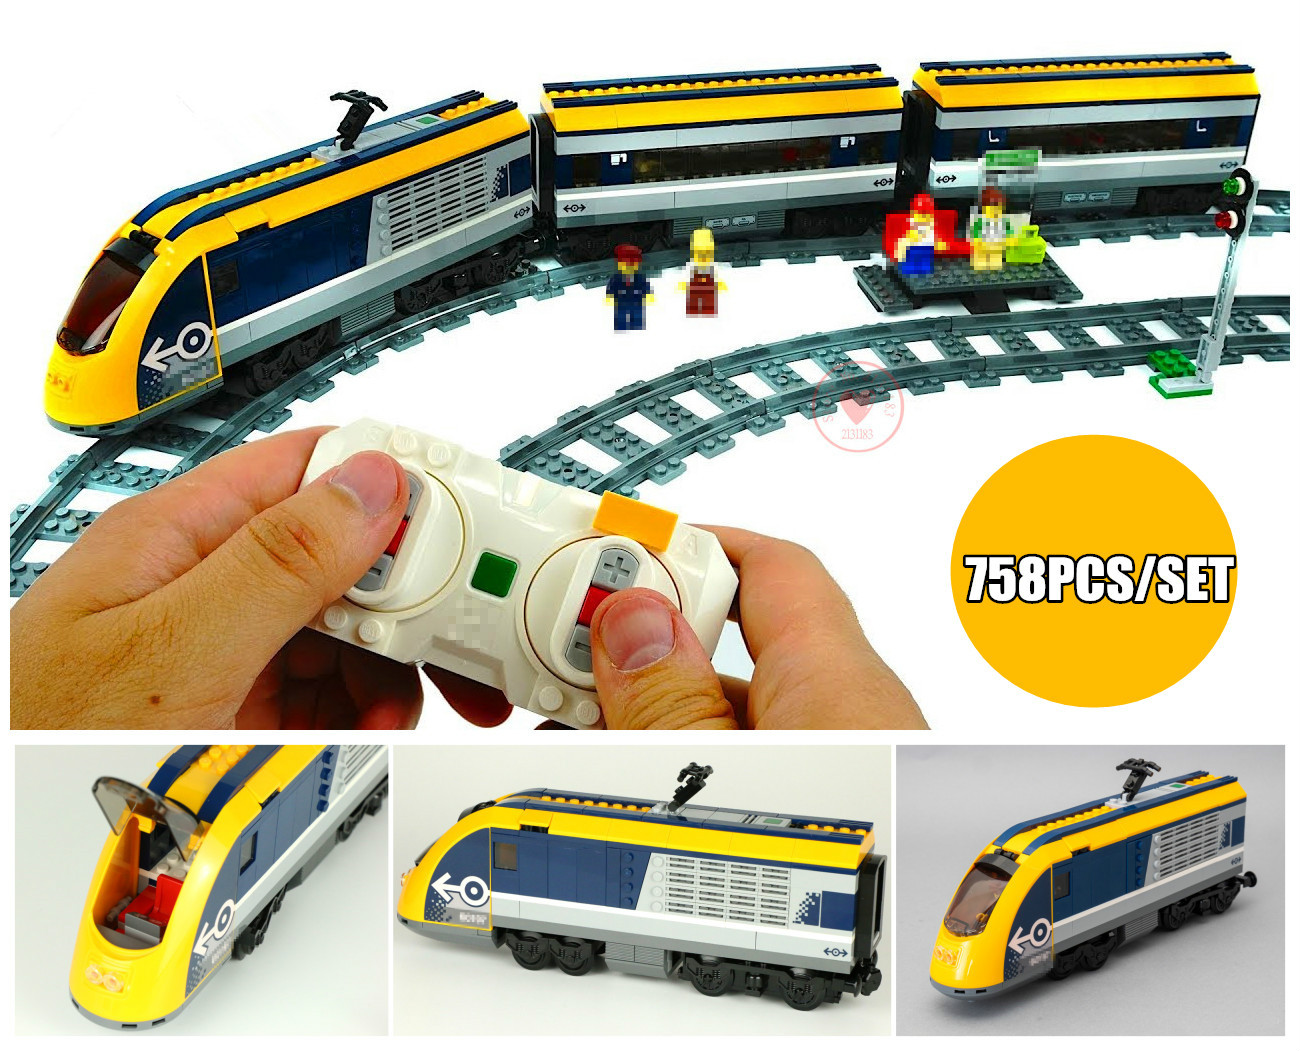 New City RC car Passenger Train station Sets fit legoings technic city figures Model Building Blocks Bricks Toy Gift 60197 kid new city series the cargo train set city train fit legoings city technic train car building blocks bricks toy 60198 diy kid gift